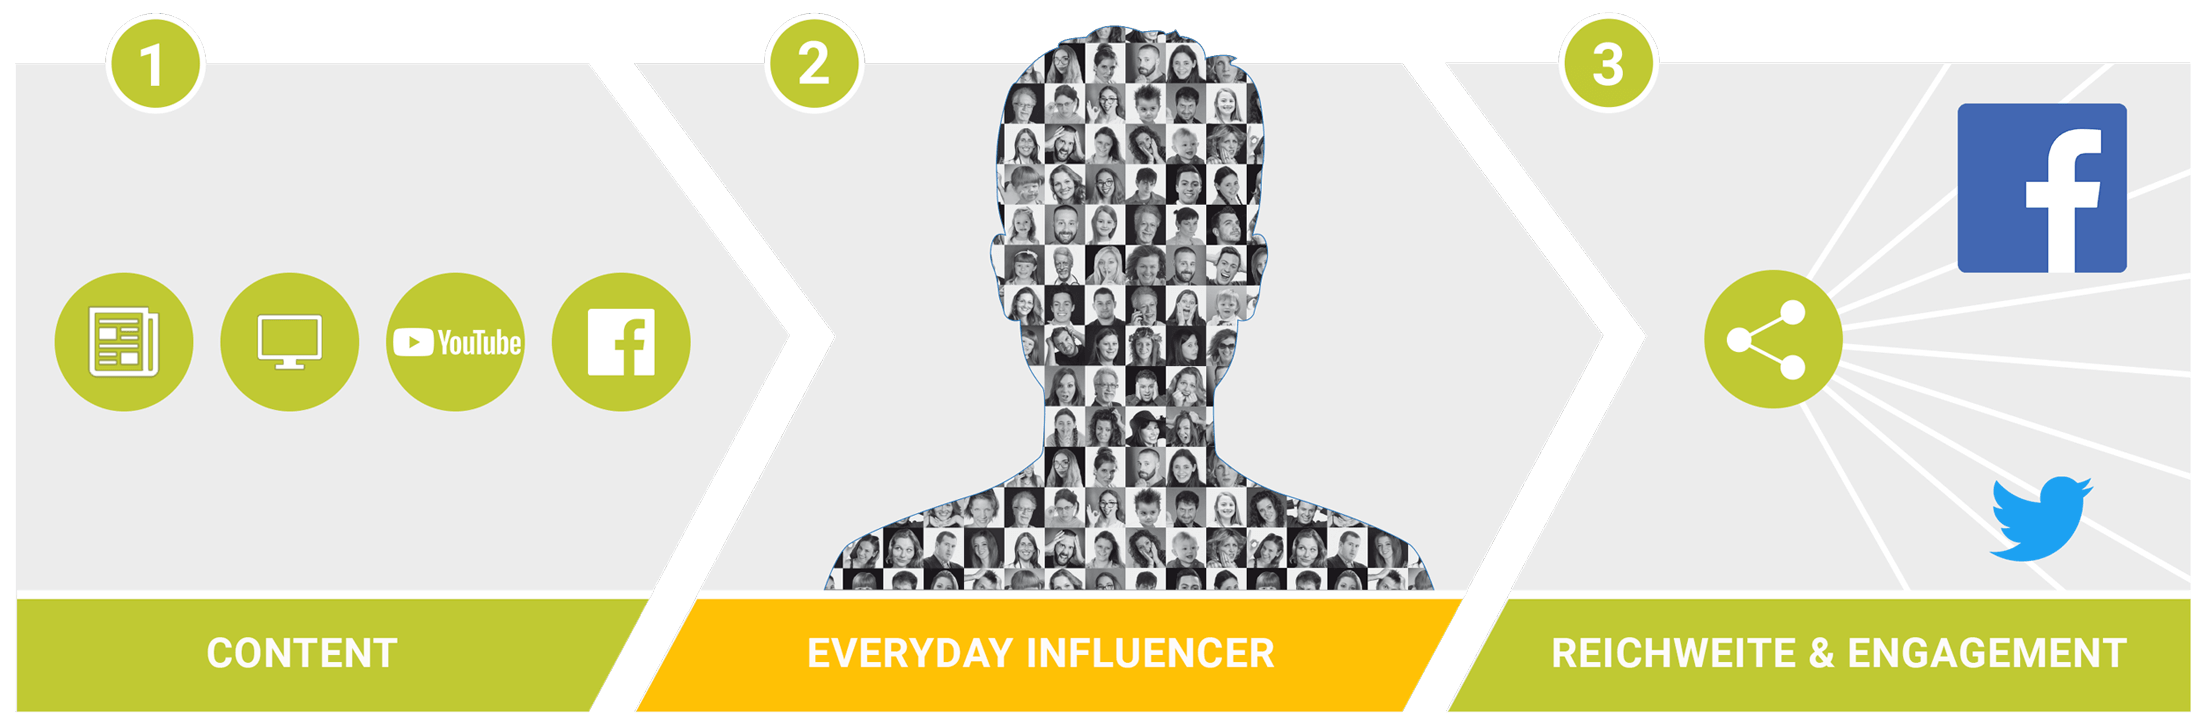 Ablauf des Authenticitycode für unsere Everyday Influencer Crowd